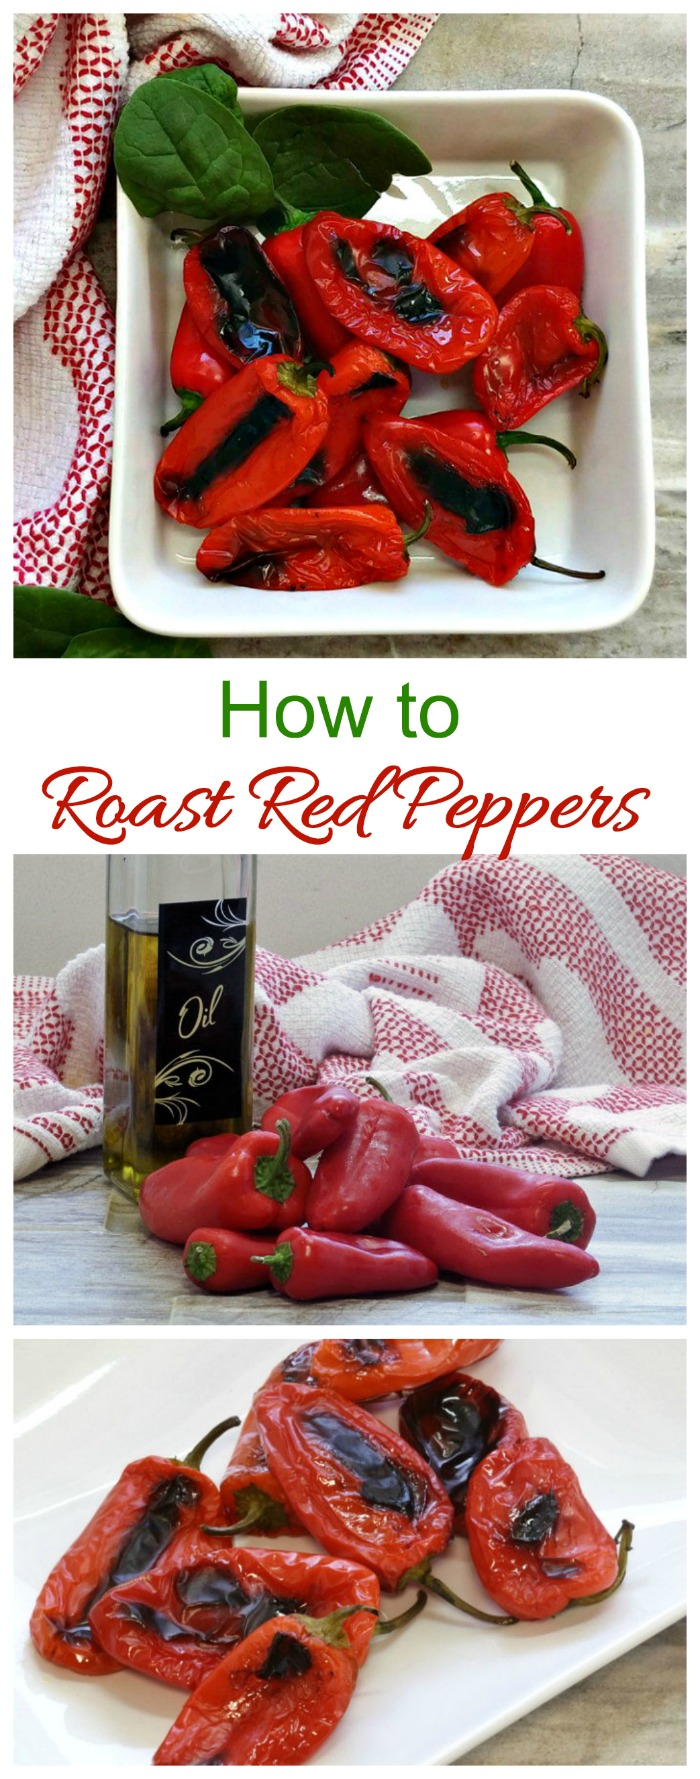 Roasting Red Peppers - How to Roast Red Peppers in the Oven